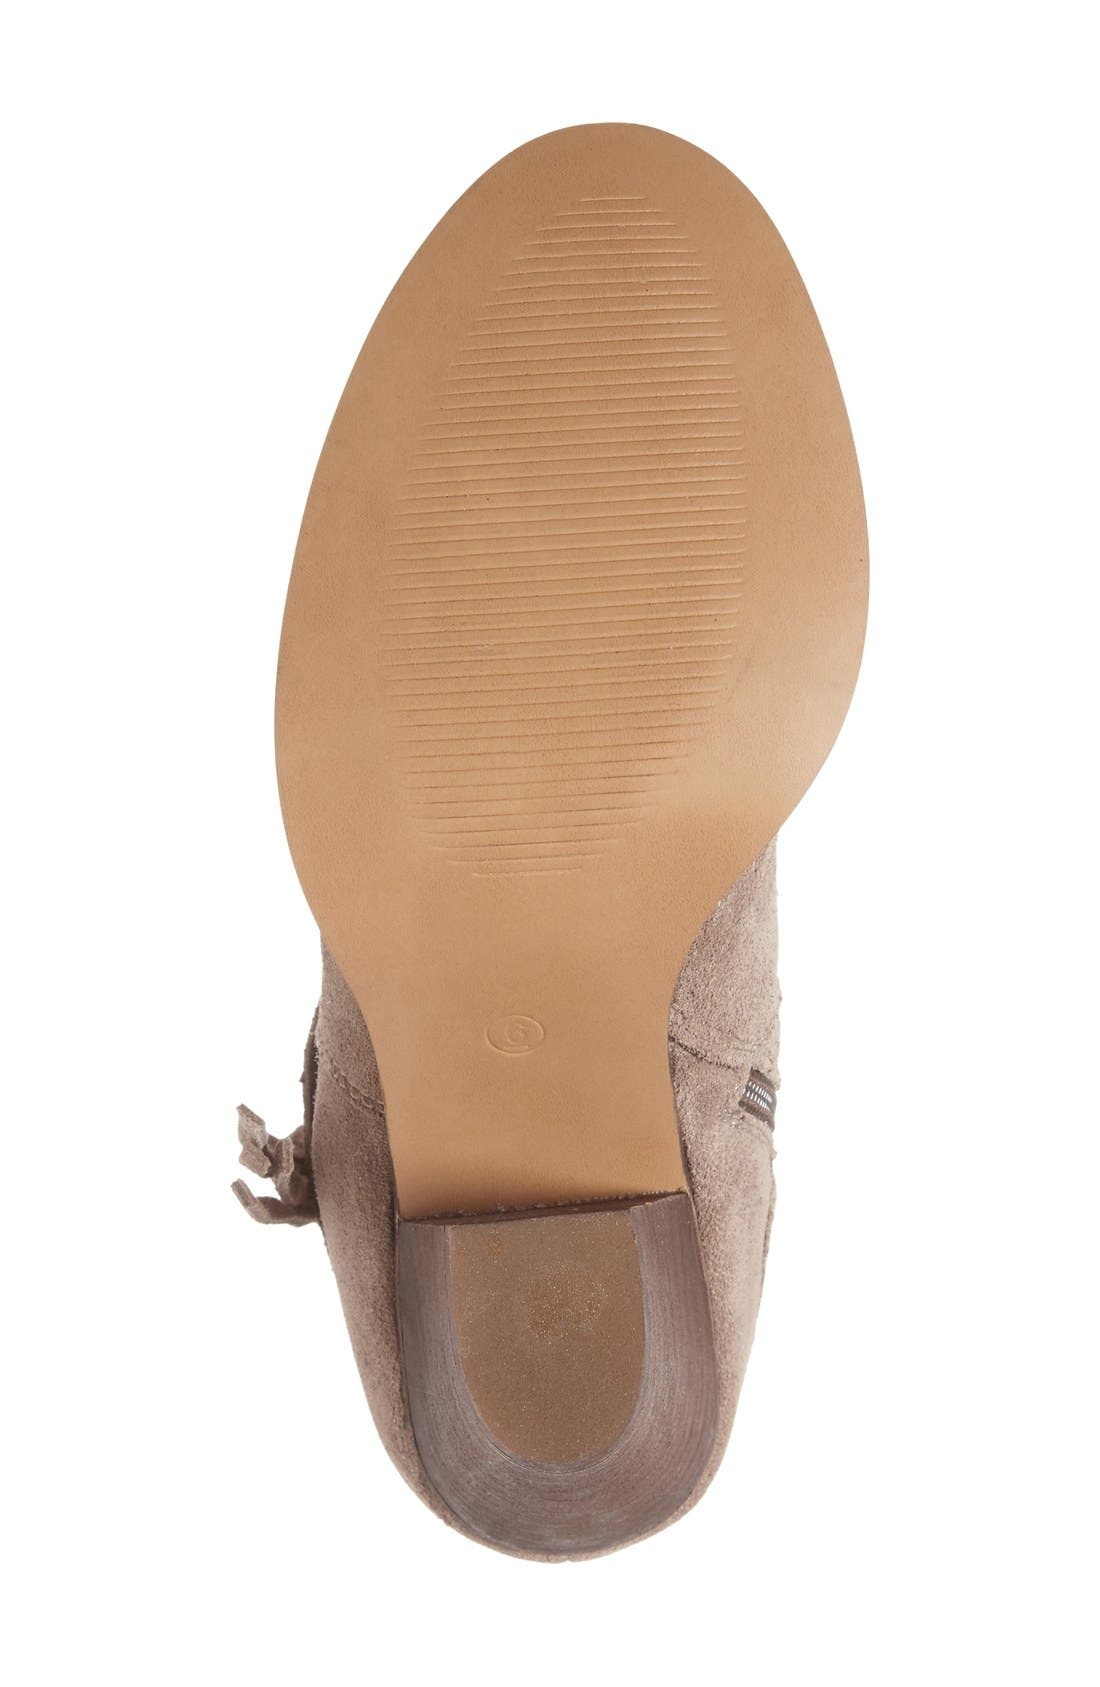 Rumi Bootie,                             Alternate thumbnail 4, color,                             Taupe